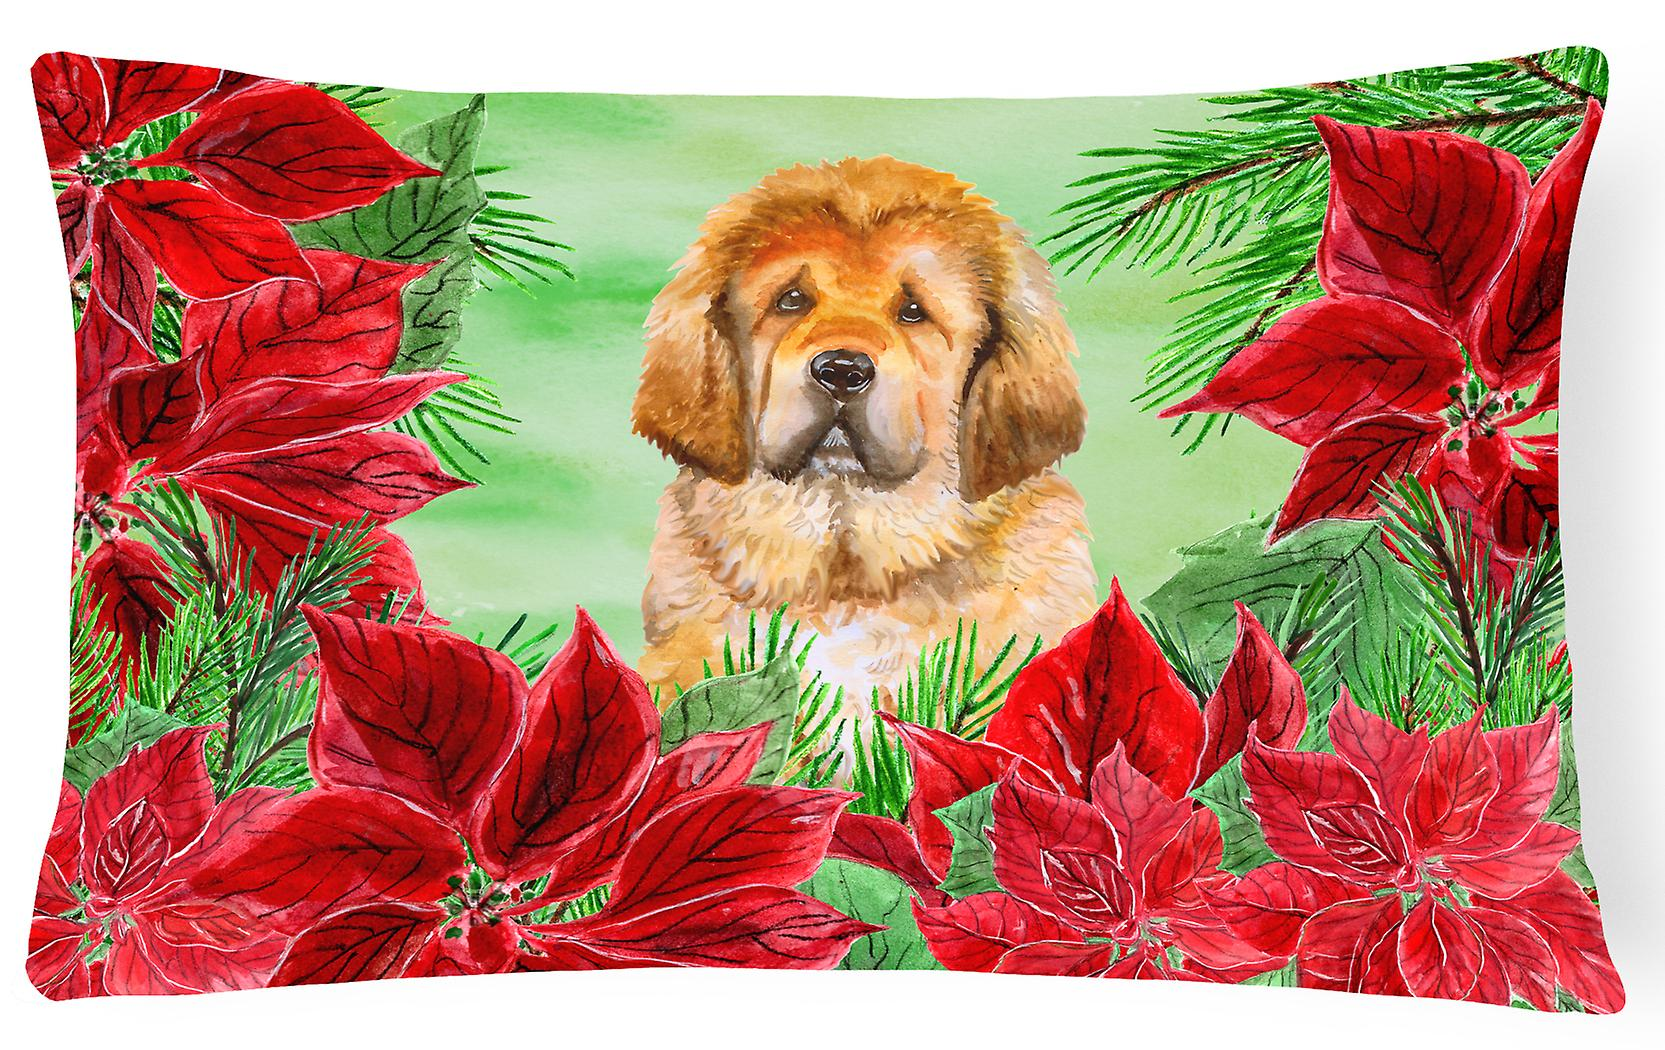 Mastiff Decorative Canvas Tibetan Pillow Poinsettas Fabric 5LqARj34